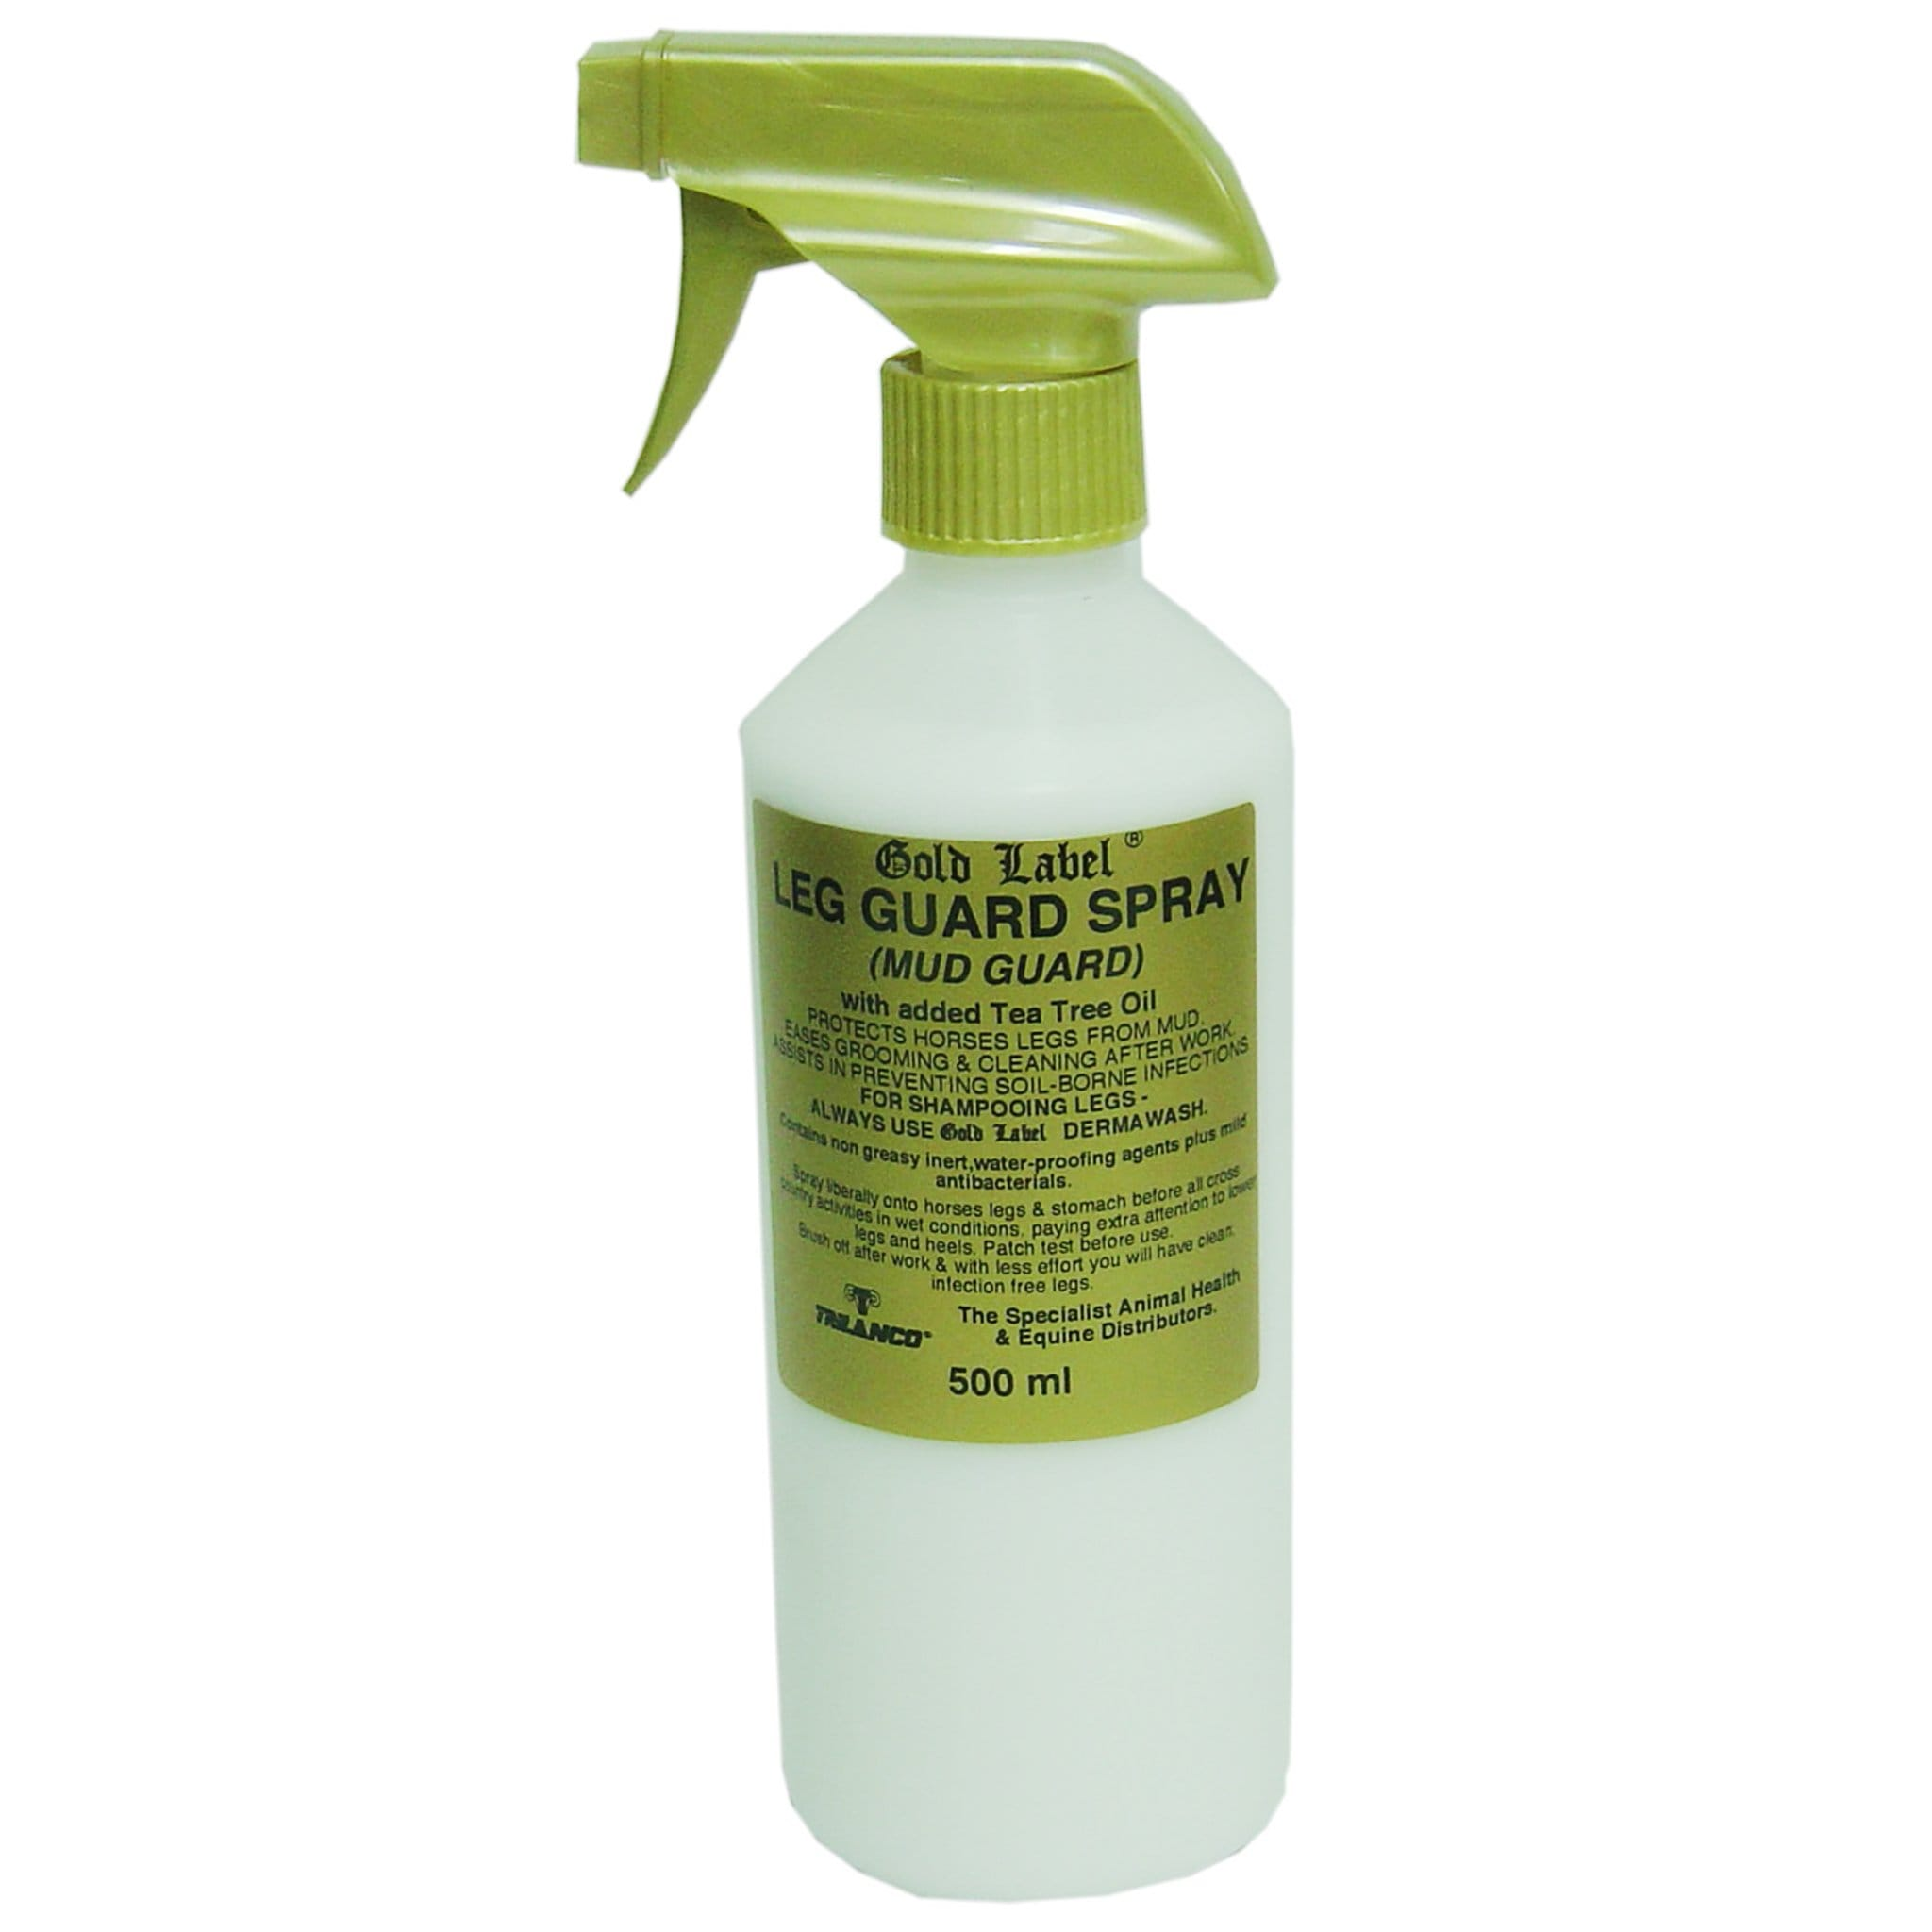 Gold Label Leg Guard Spray GLD0508